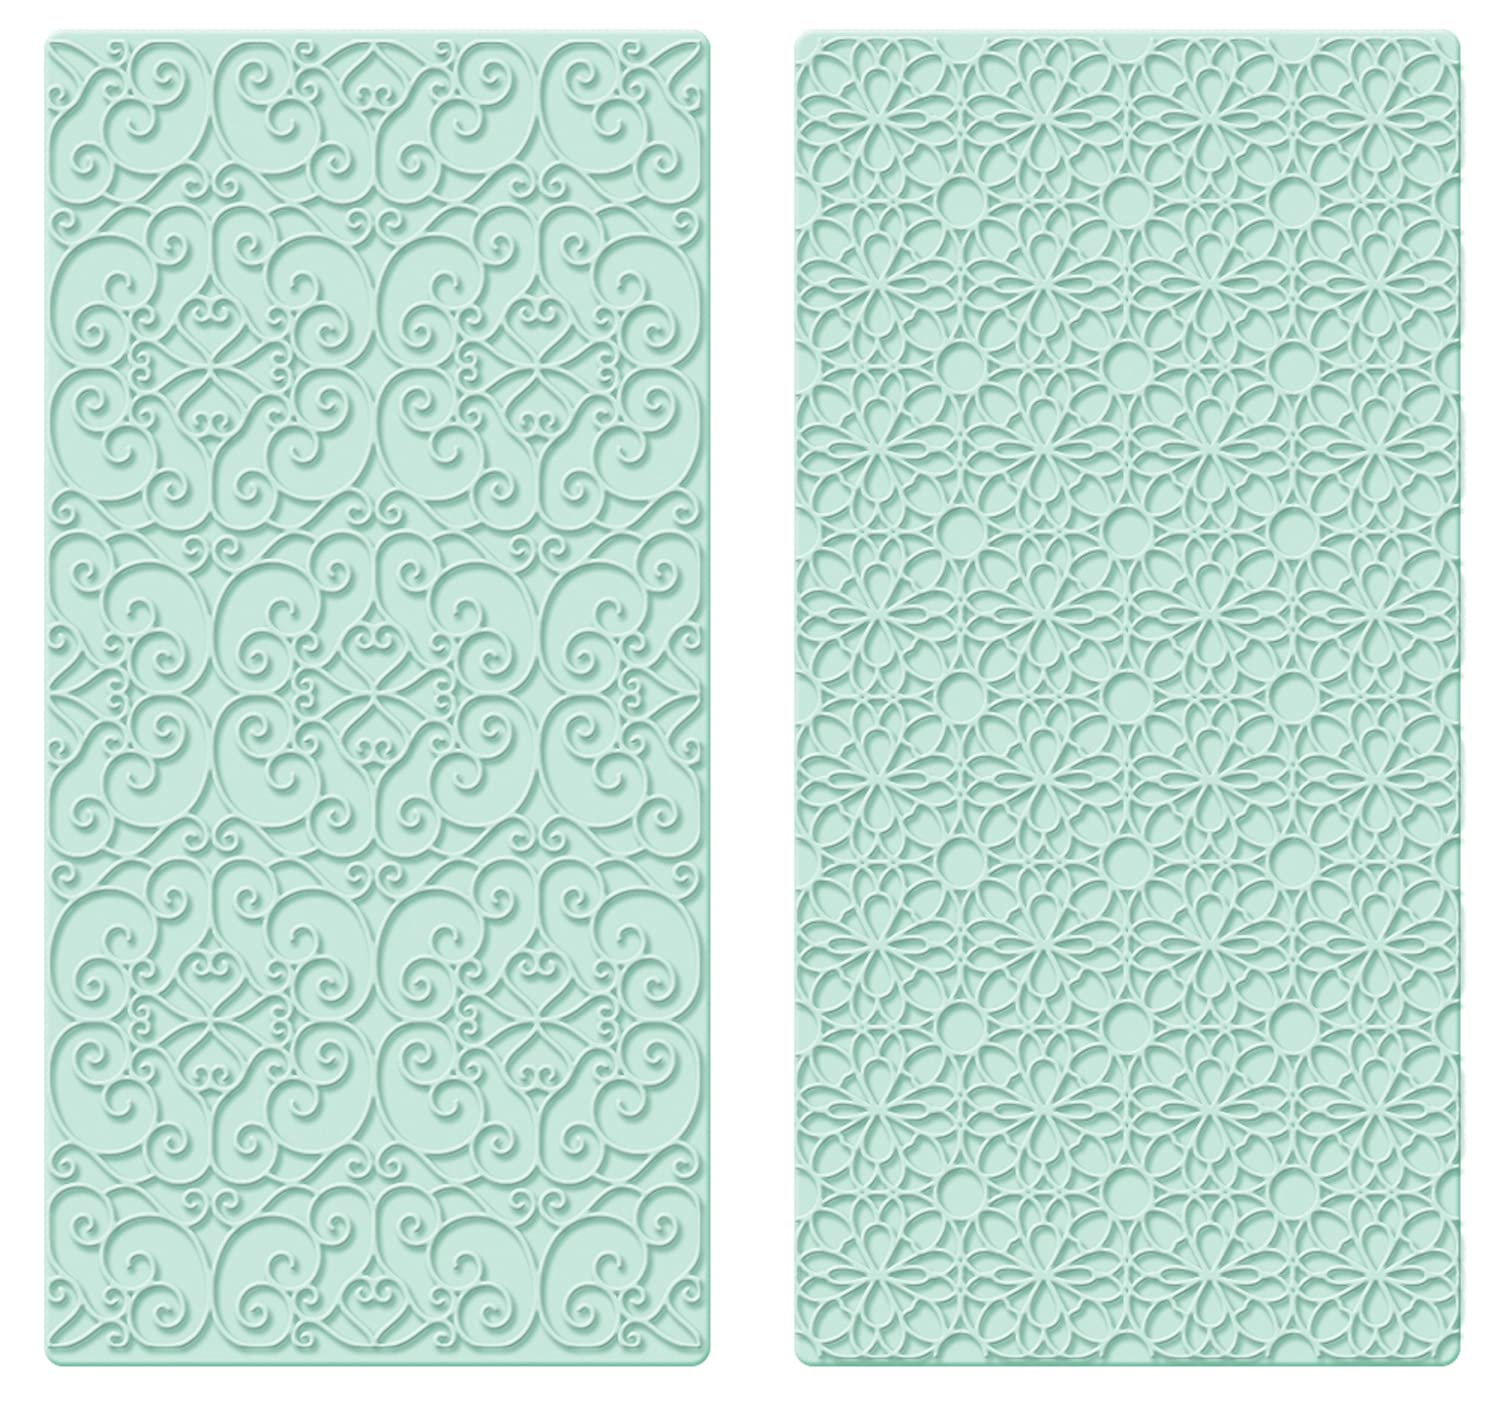 Sweetly Does It Filigree and Geometric Easy Press Embossers, Green Kitchen Craft SDIEMBOSS02PK2